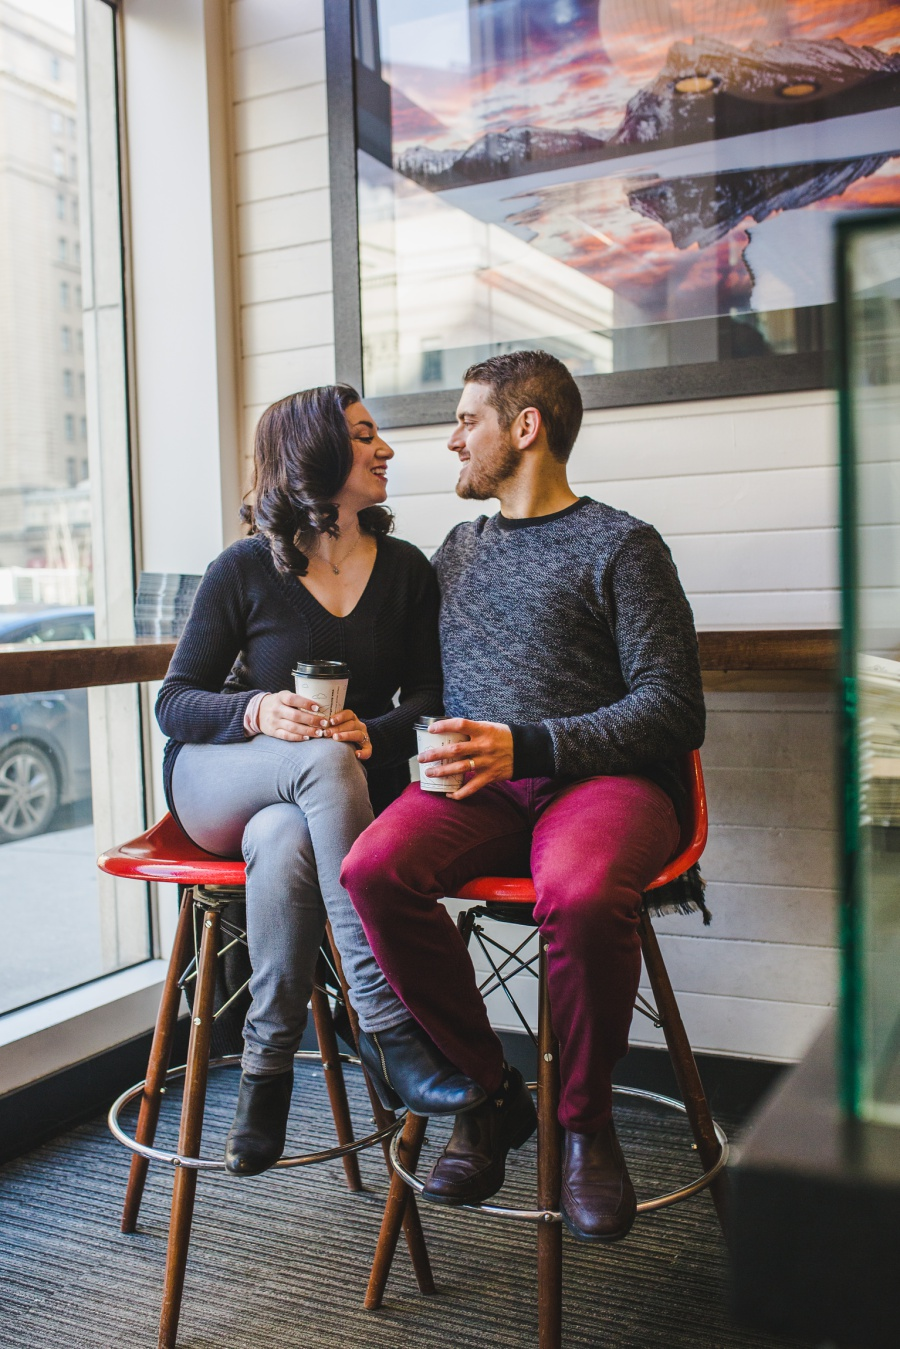 calgary stephen ave engagement session photos winter coffee date